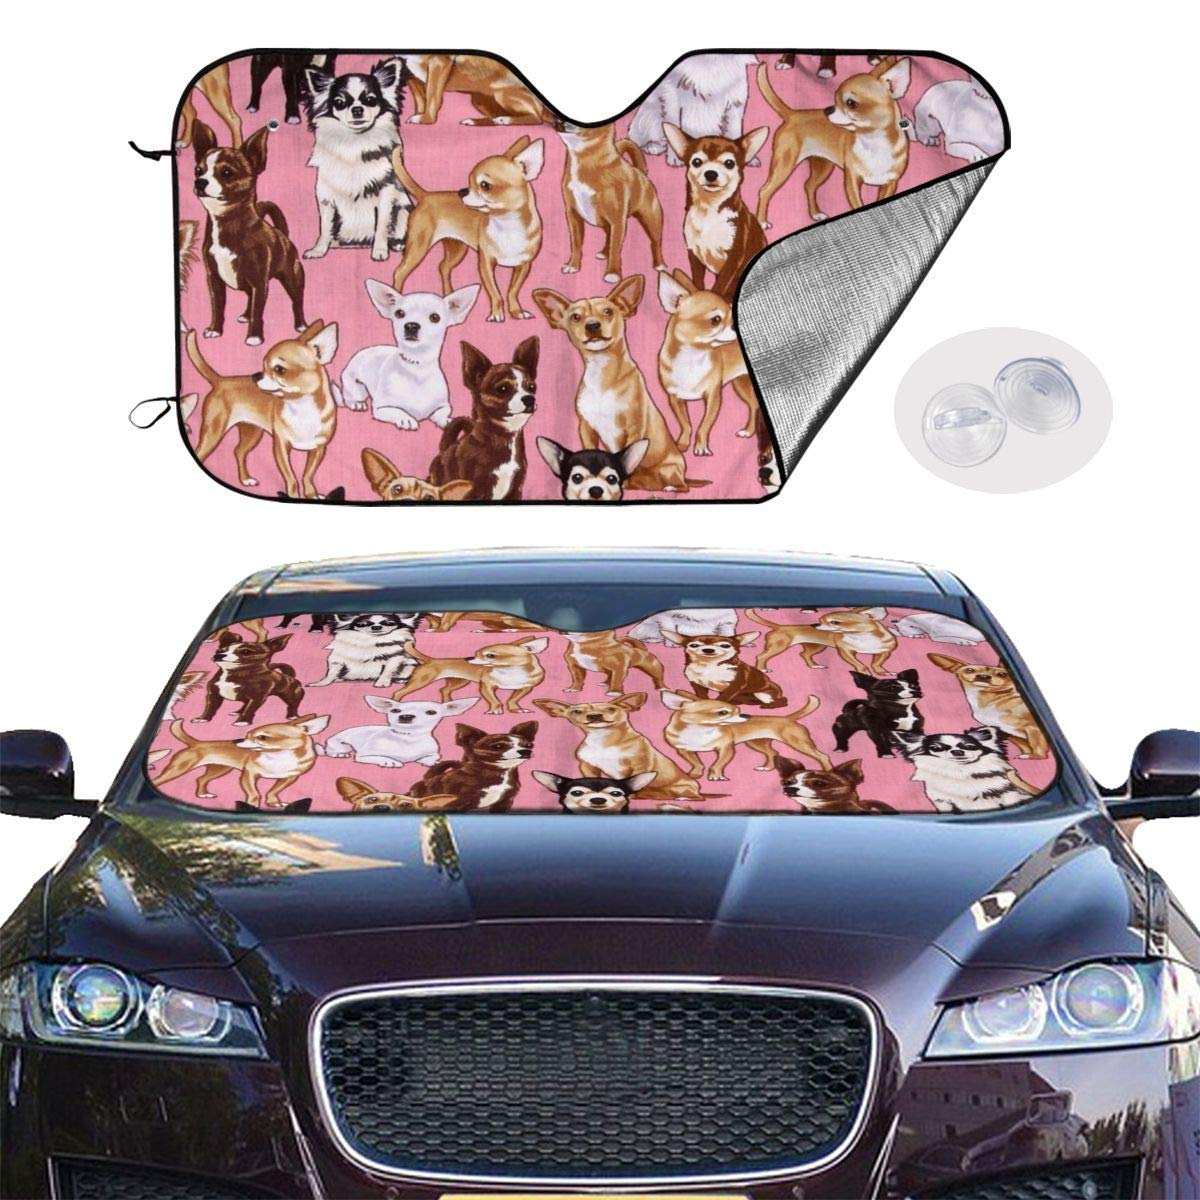 51 X 27.5 Keeps Vehicle Cool Kejbr Chiwawas Dog Pink Frontscheibe Sonnenschutz for Car Foldable UV Ray Reflector Auto Front Window Sun Shade Visor Shield Cover